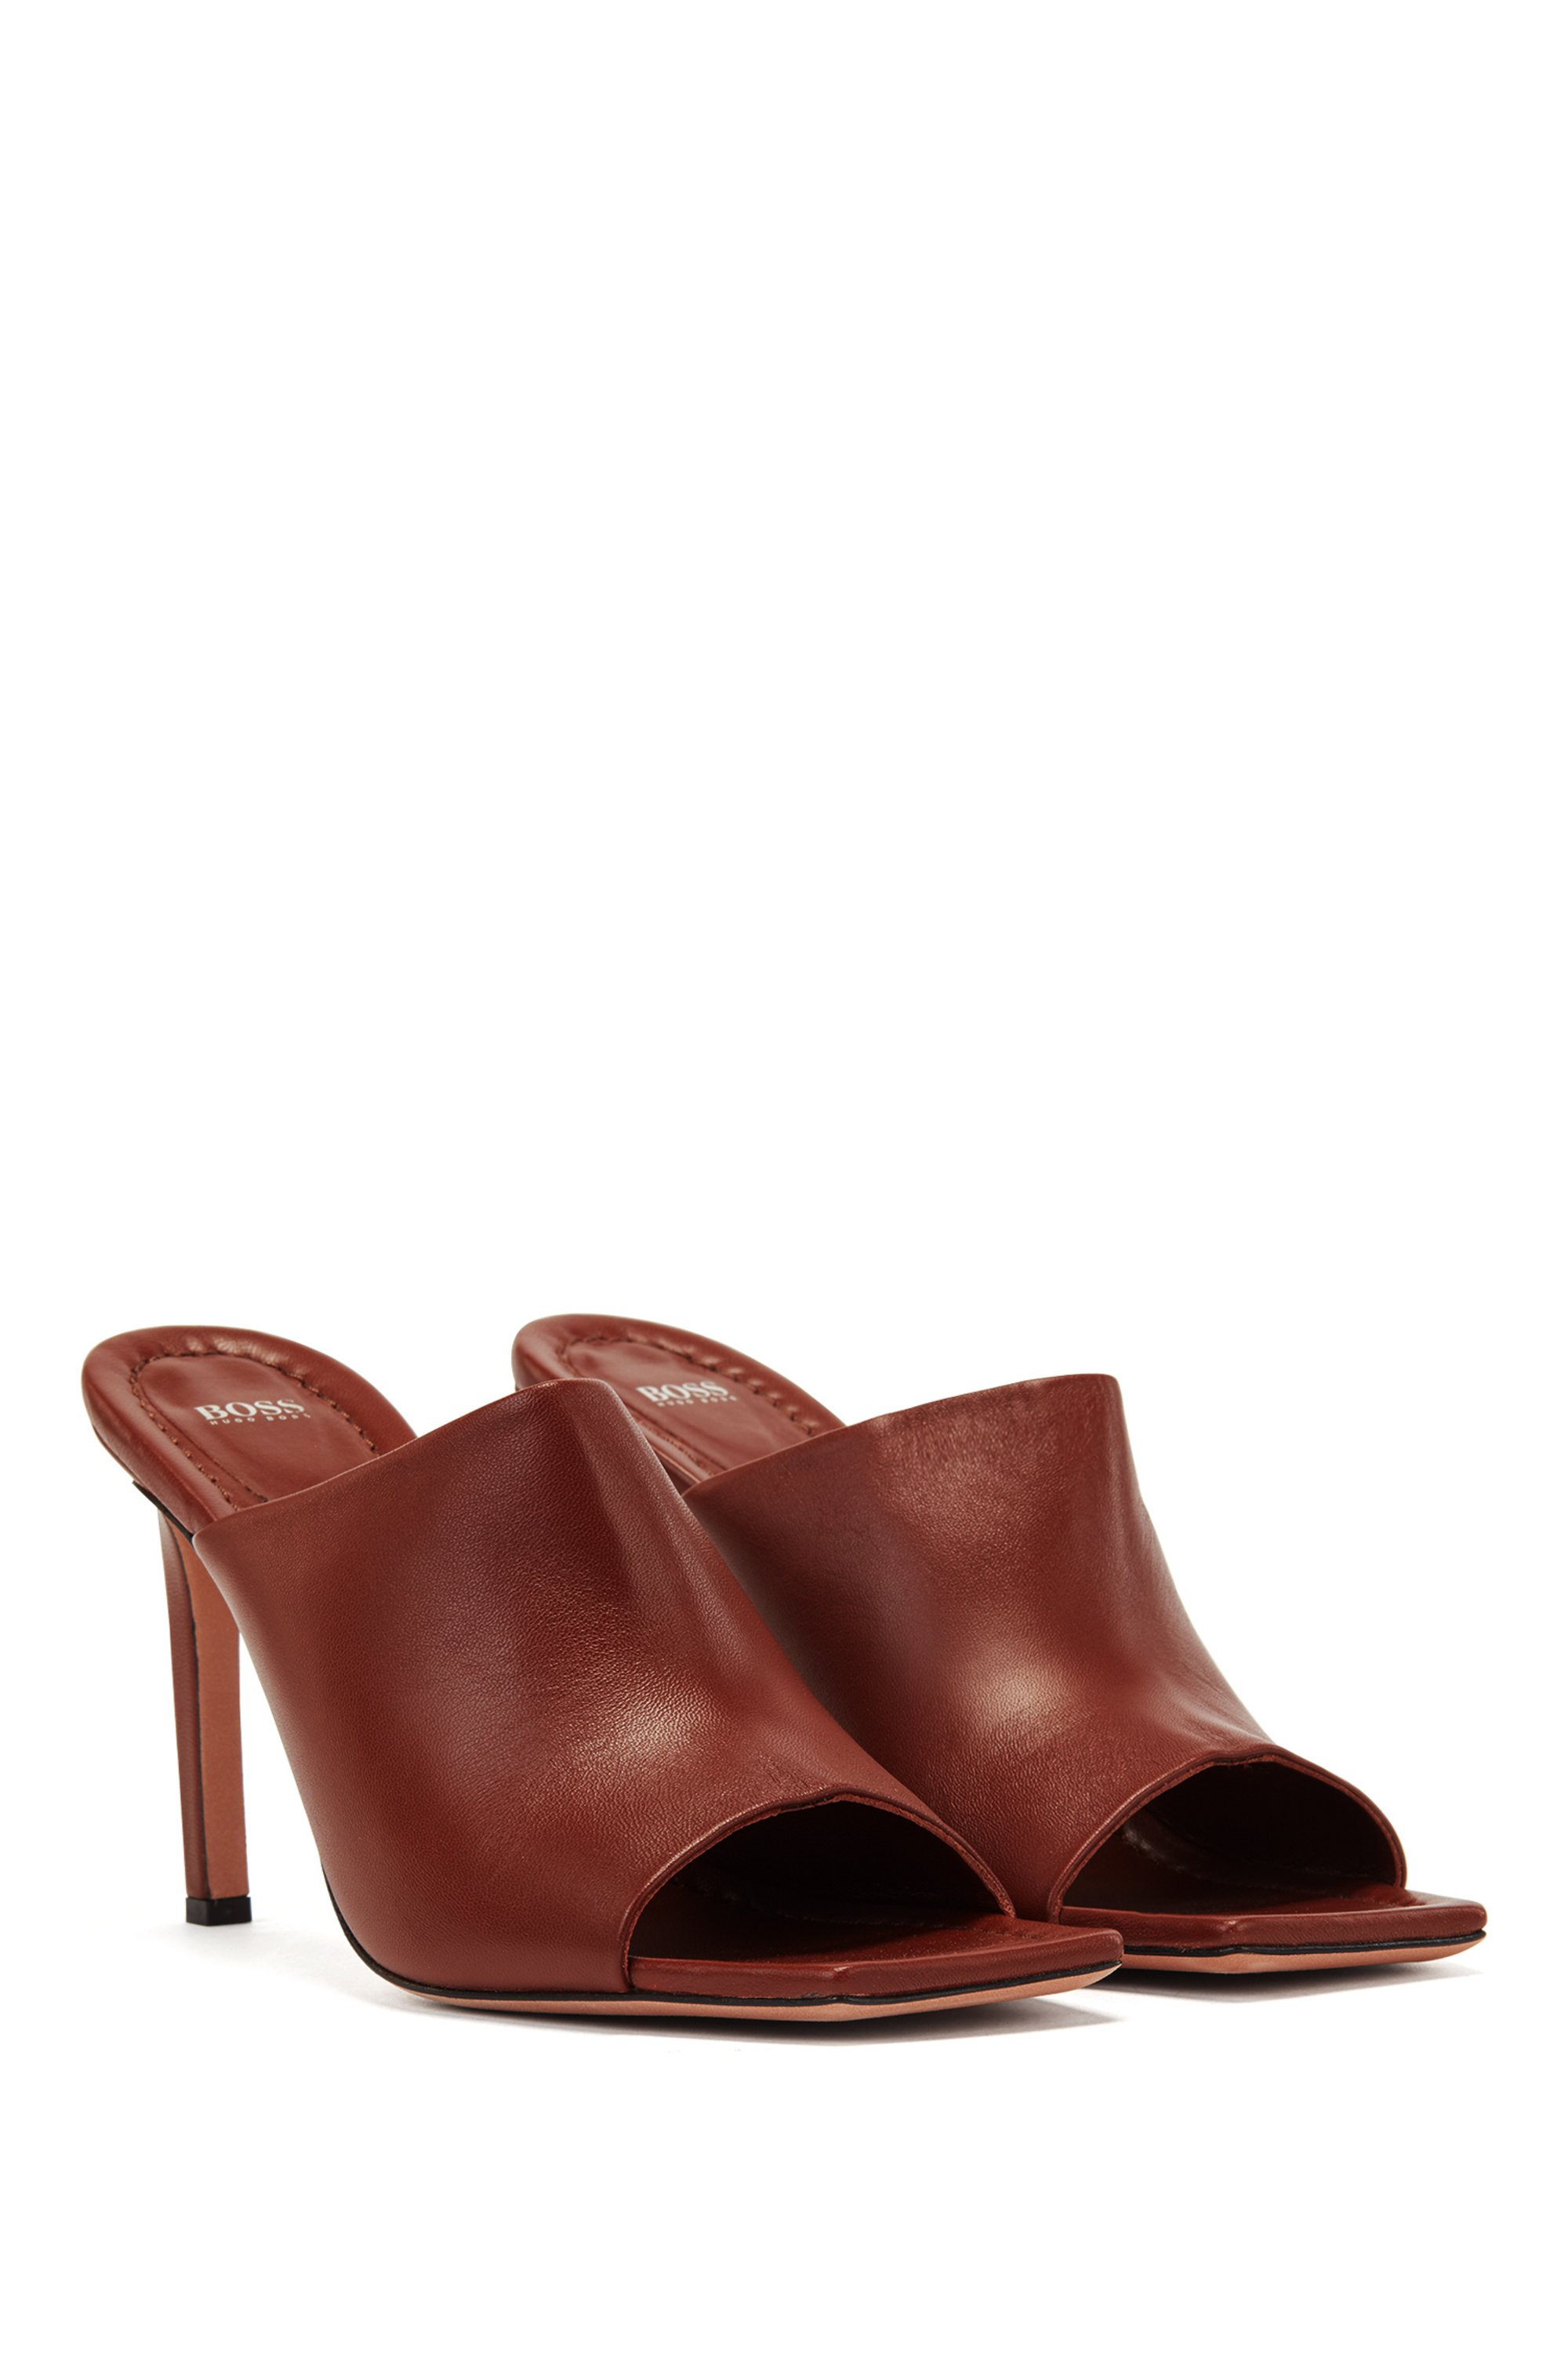 High-heeled mules in Italian leather